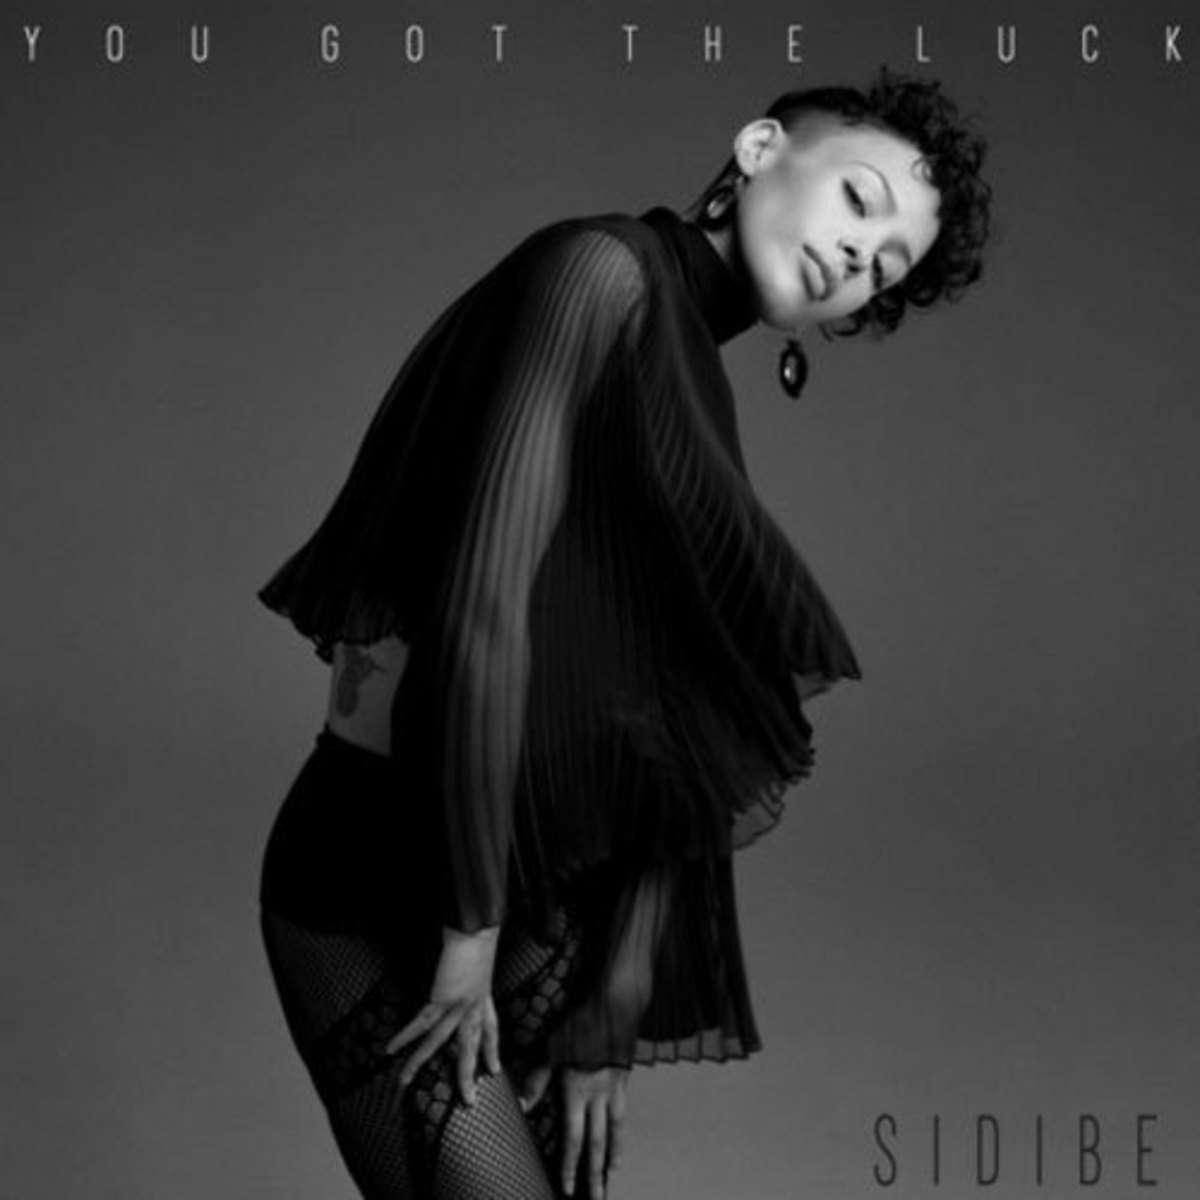 sidibe-you-got-the-luck.jpg